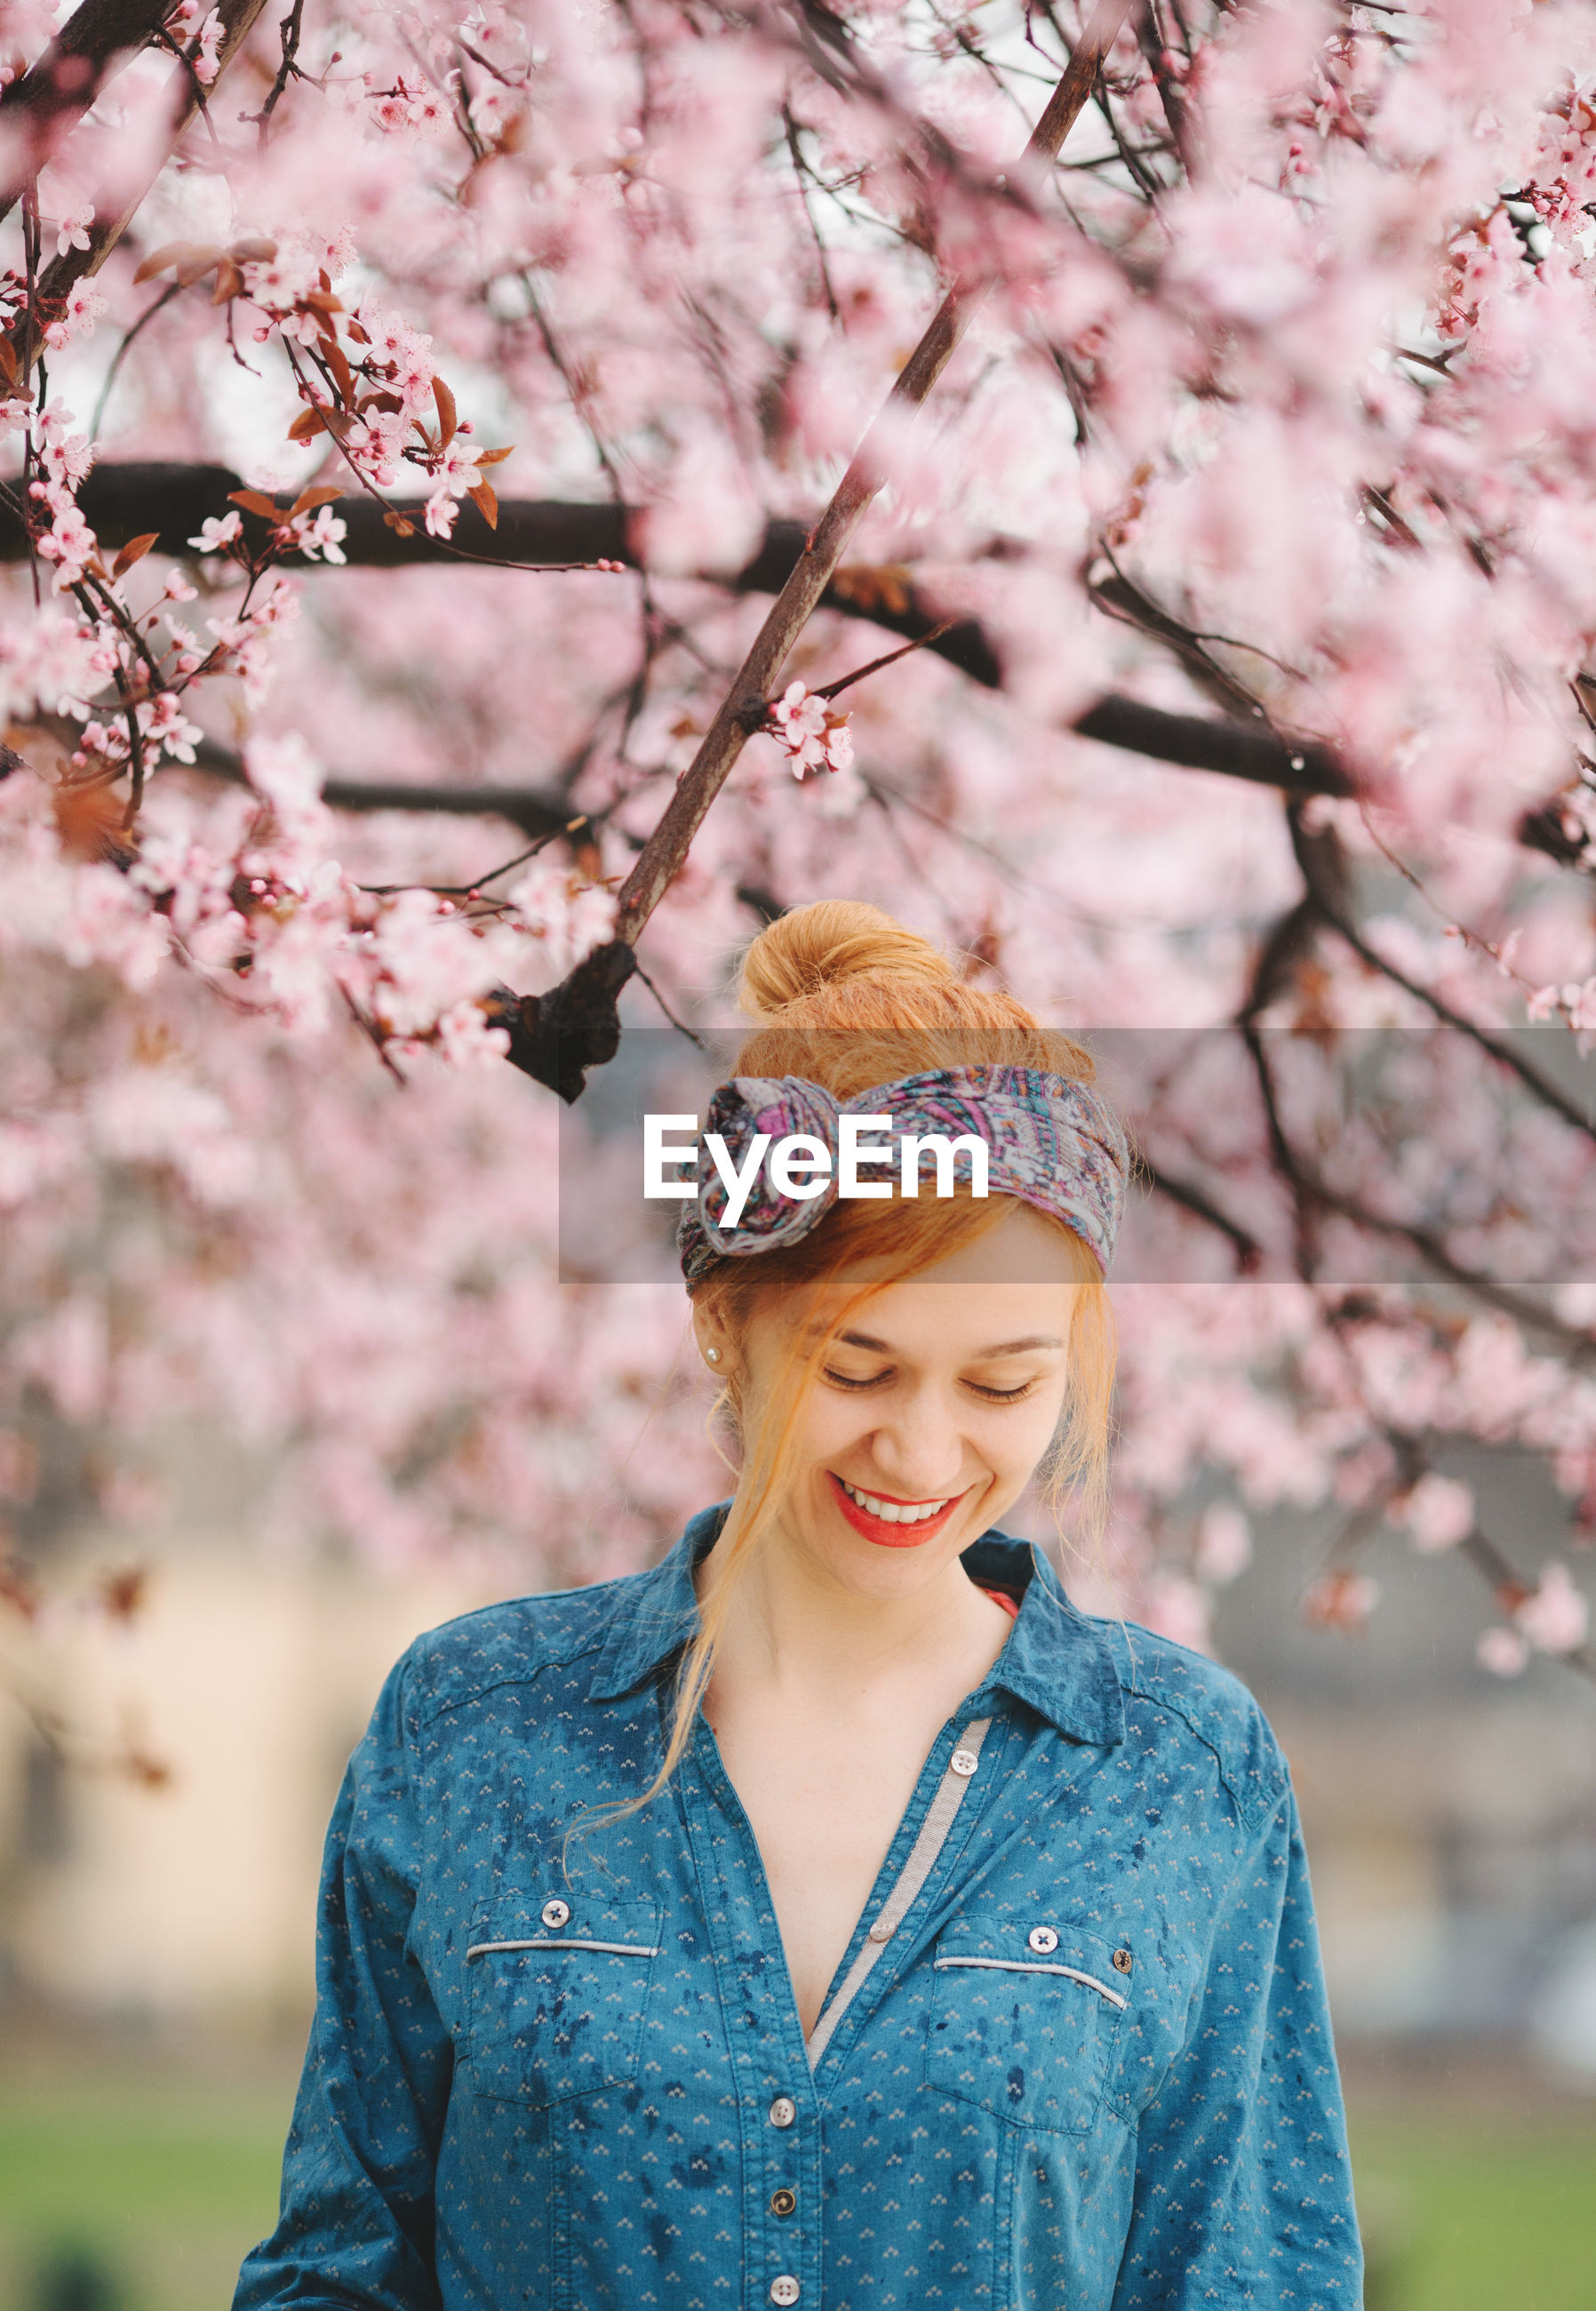 PORTRAIT OF SMILING YOUNG WOMAN WITH PINK CHERRY BLOSSOMS